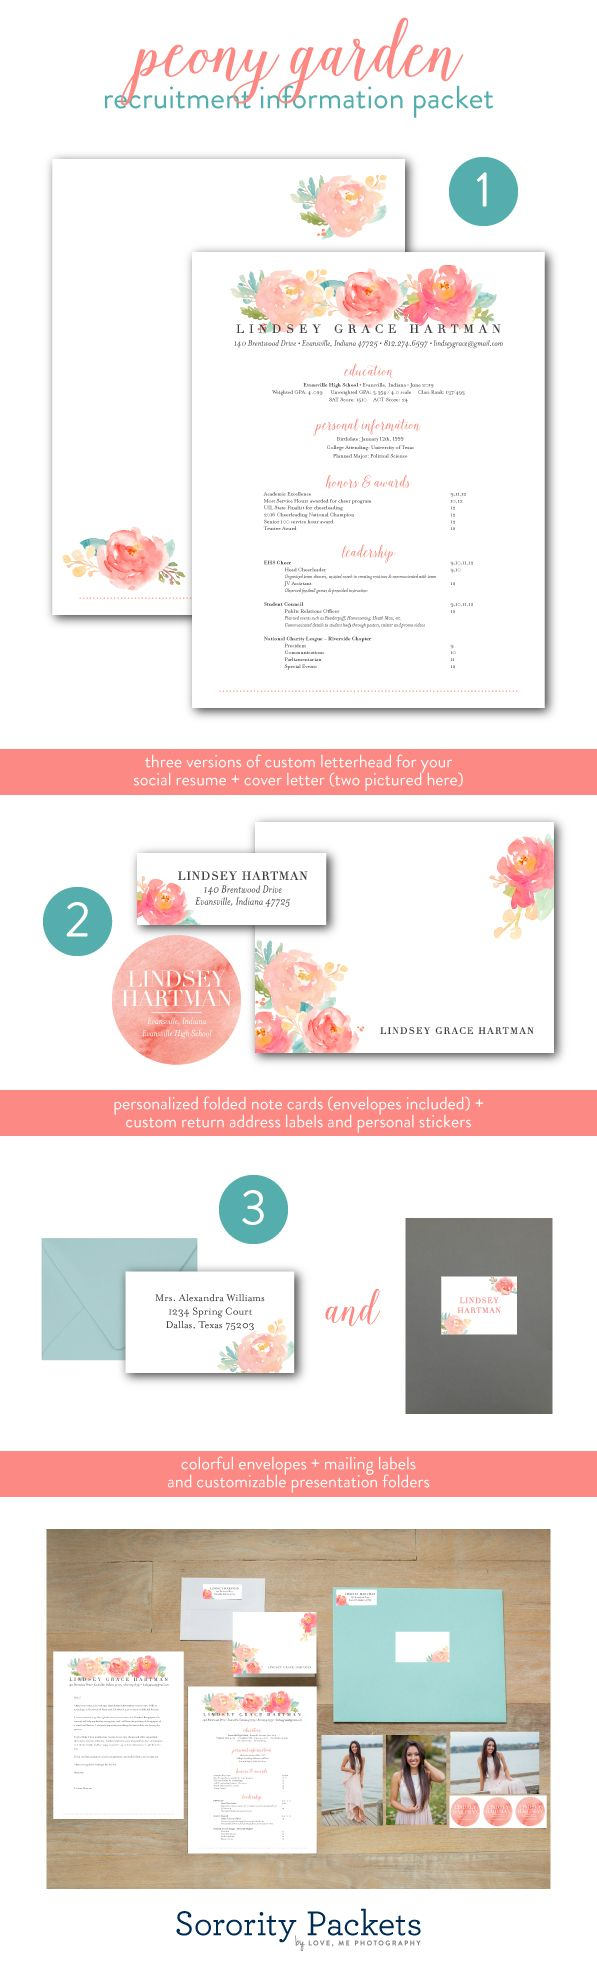 Sorority Recruitment Packet, Peony Garden Design // All the heart eyes for this customizable sorority recruitment packet! Our Peony Garden recruitment information packet features a watercolor floral design, and includes 3 versions of custom letterhead, note cards, personal stickers, address labels, and more! | sorority packets | www.sororitypackets.com